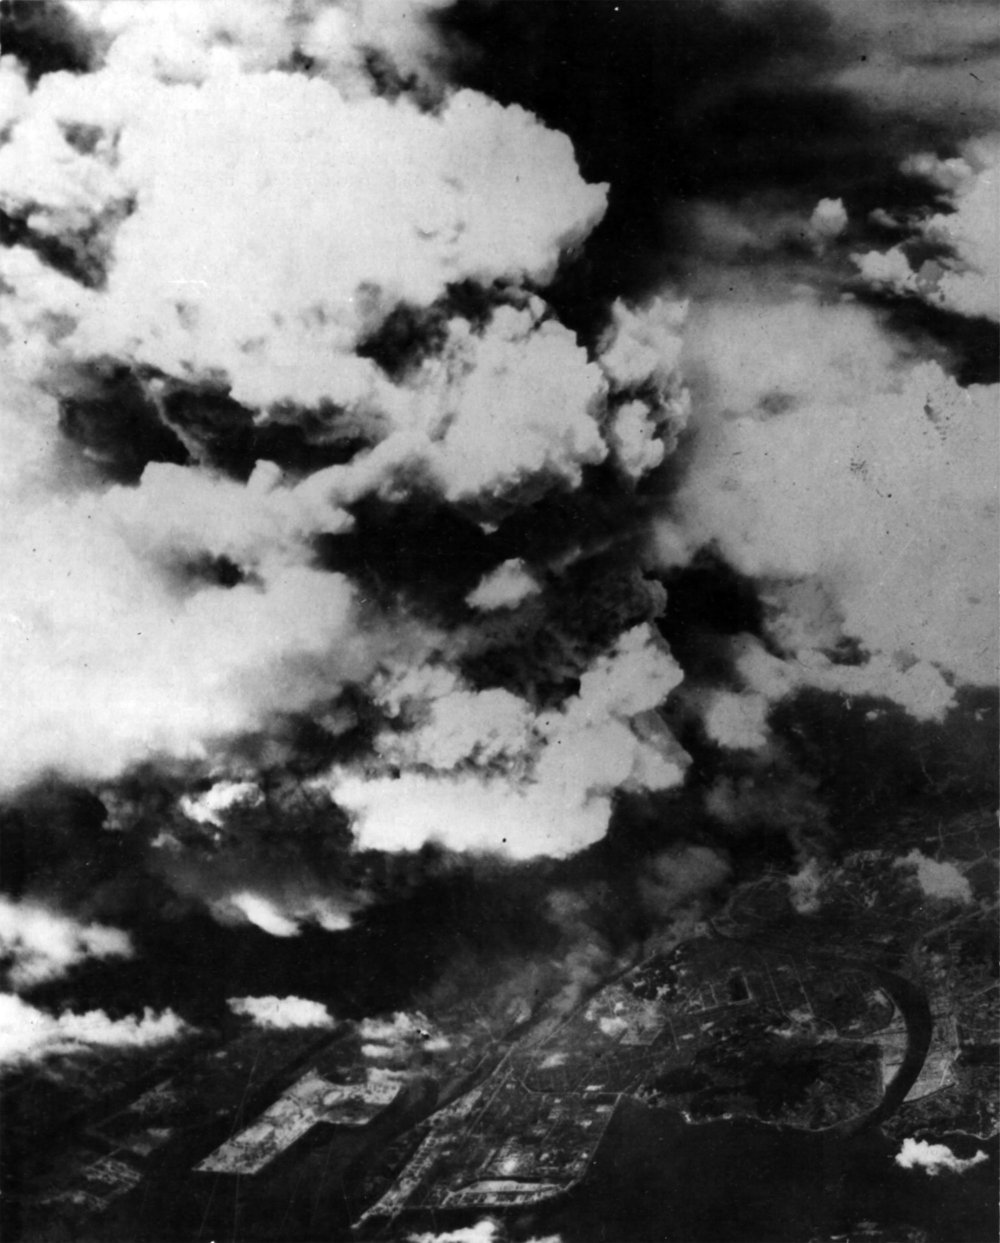 Debris clouds above Hiroshima